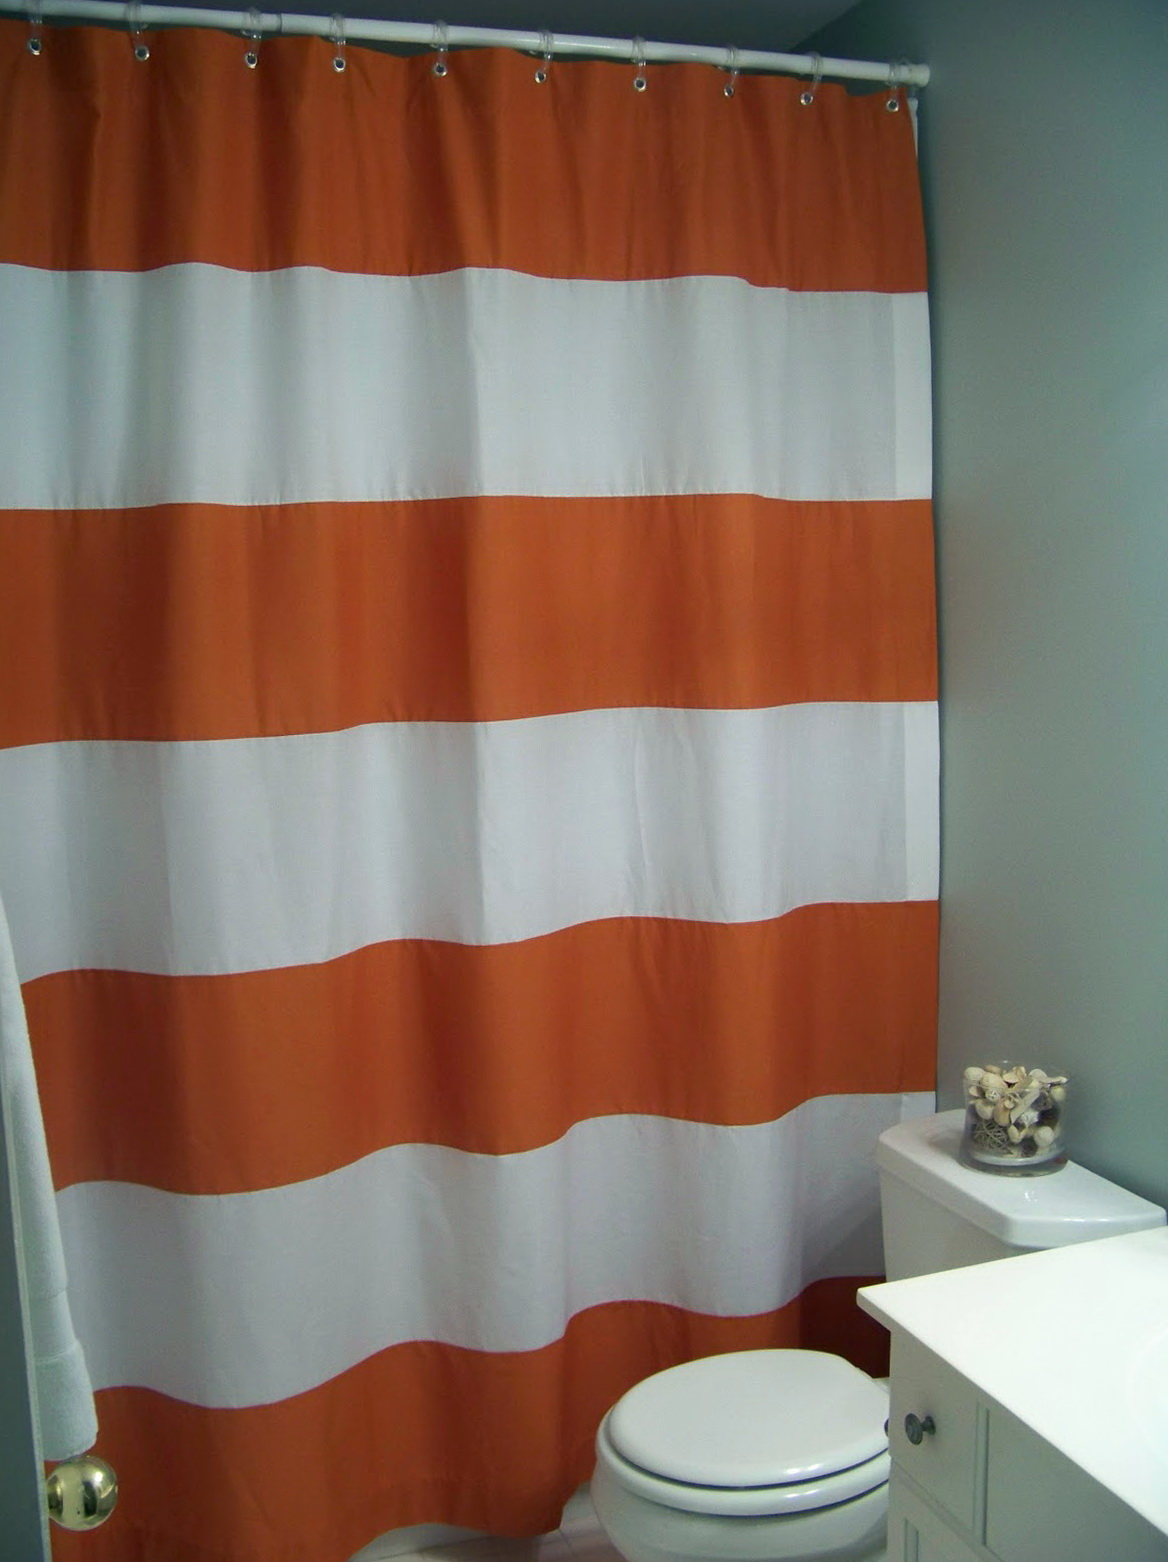 Awesome Red Striped Shower Curtain Ornament - Luxurious Bathtub ...